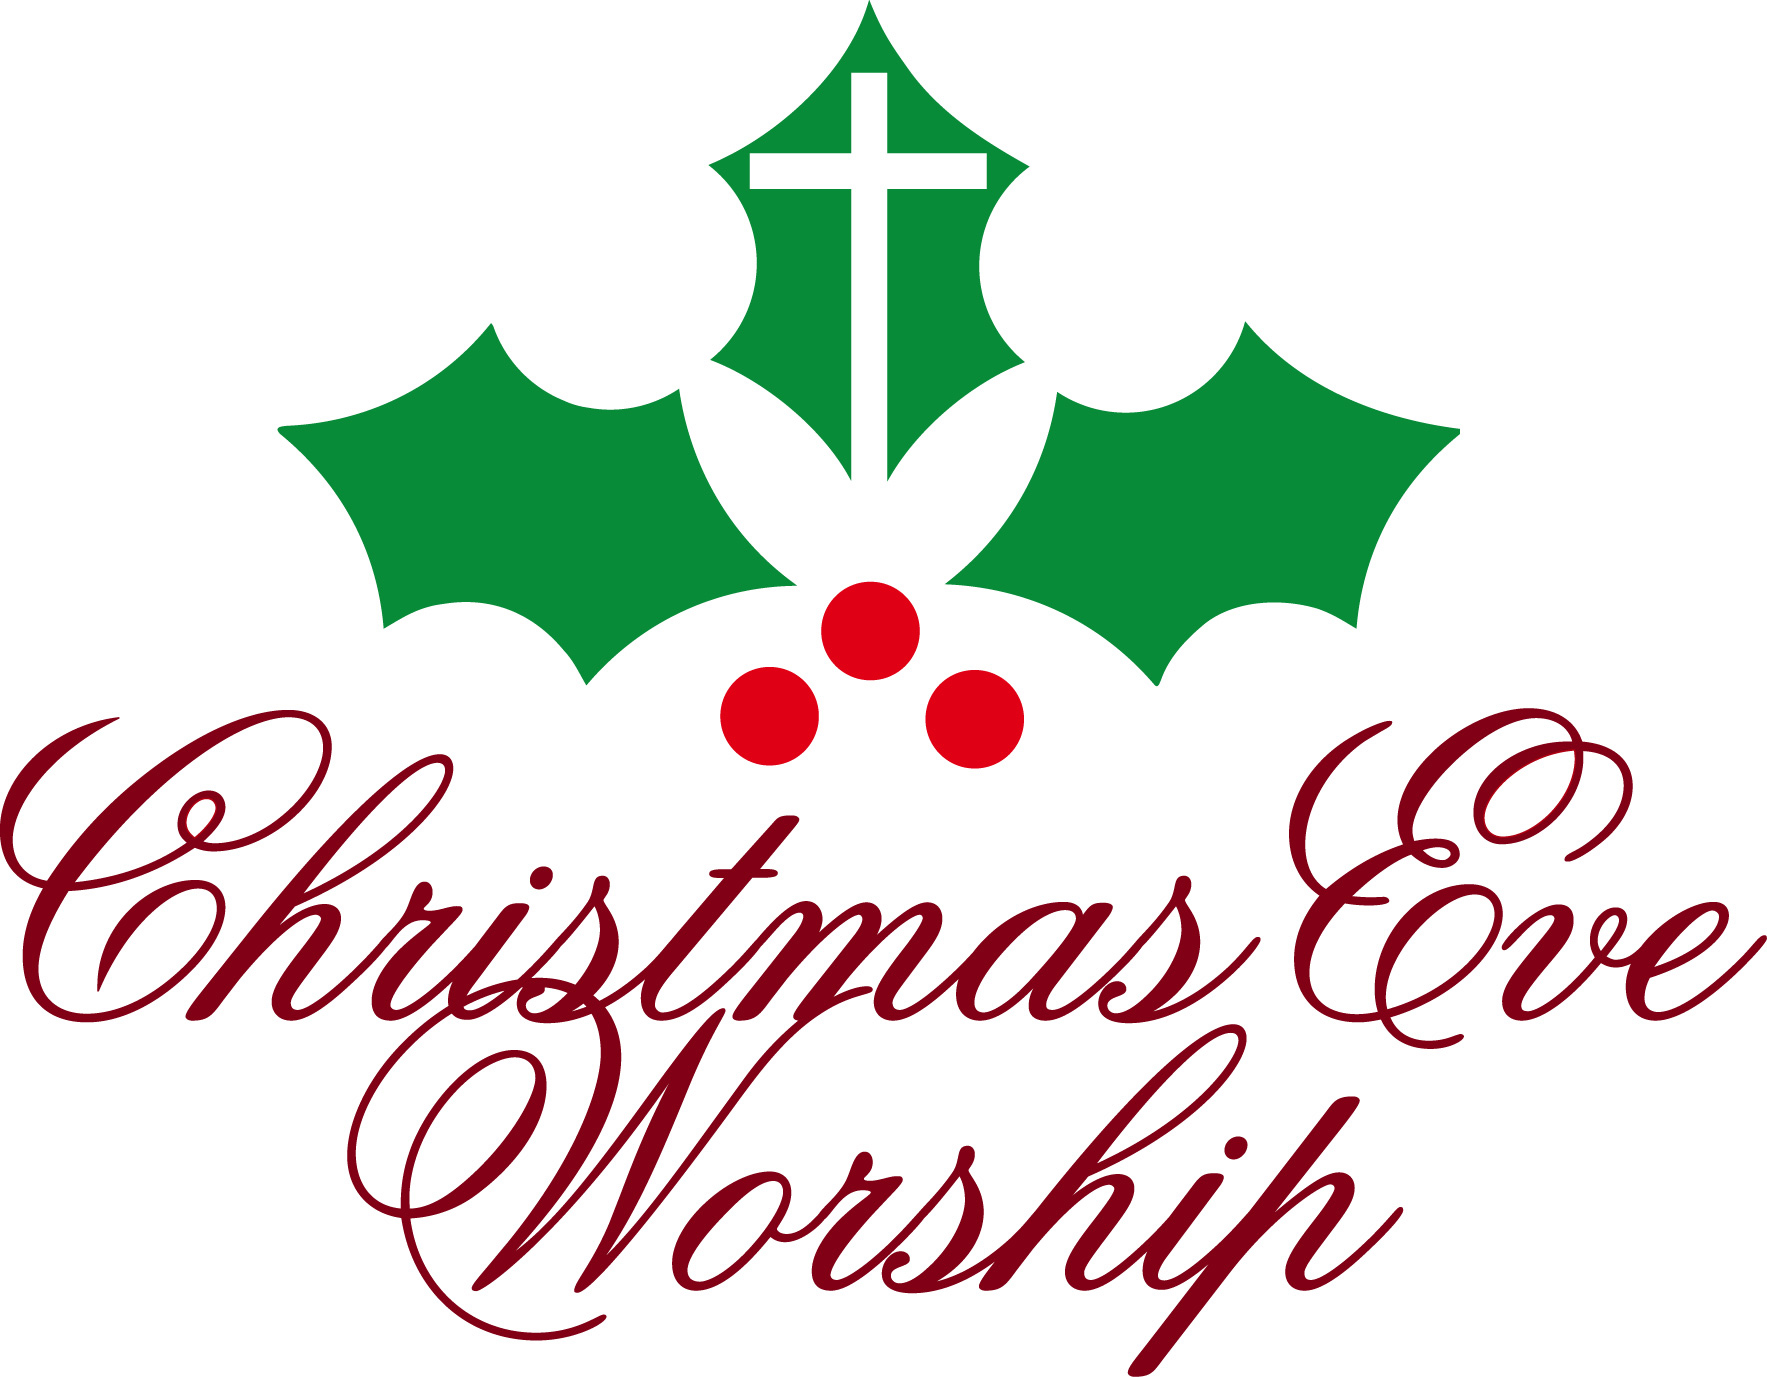 1767x1377 Collection Of Free Christian Clipart Christmas Eve High